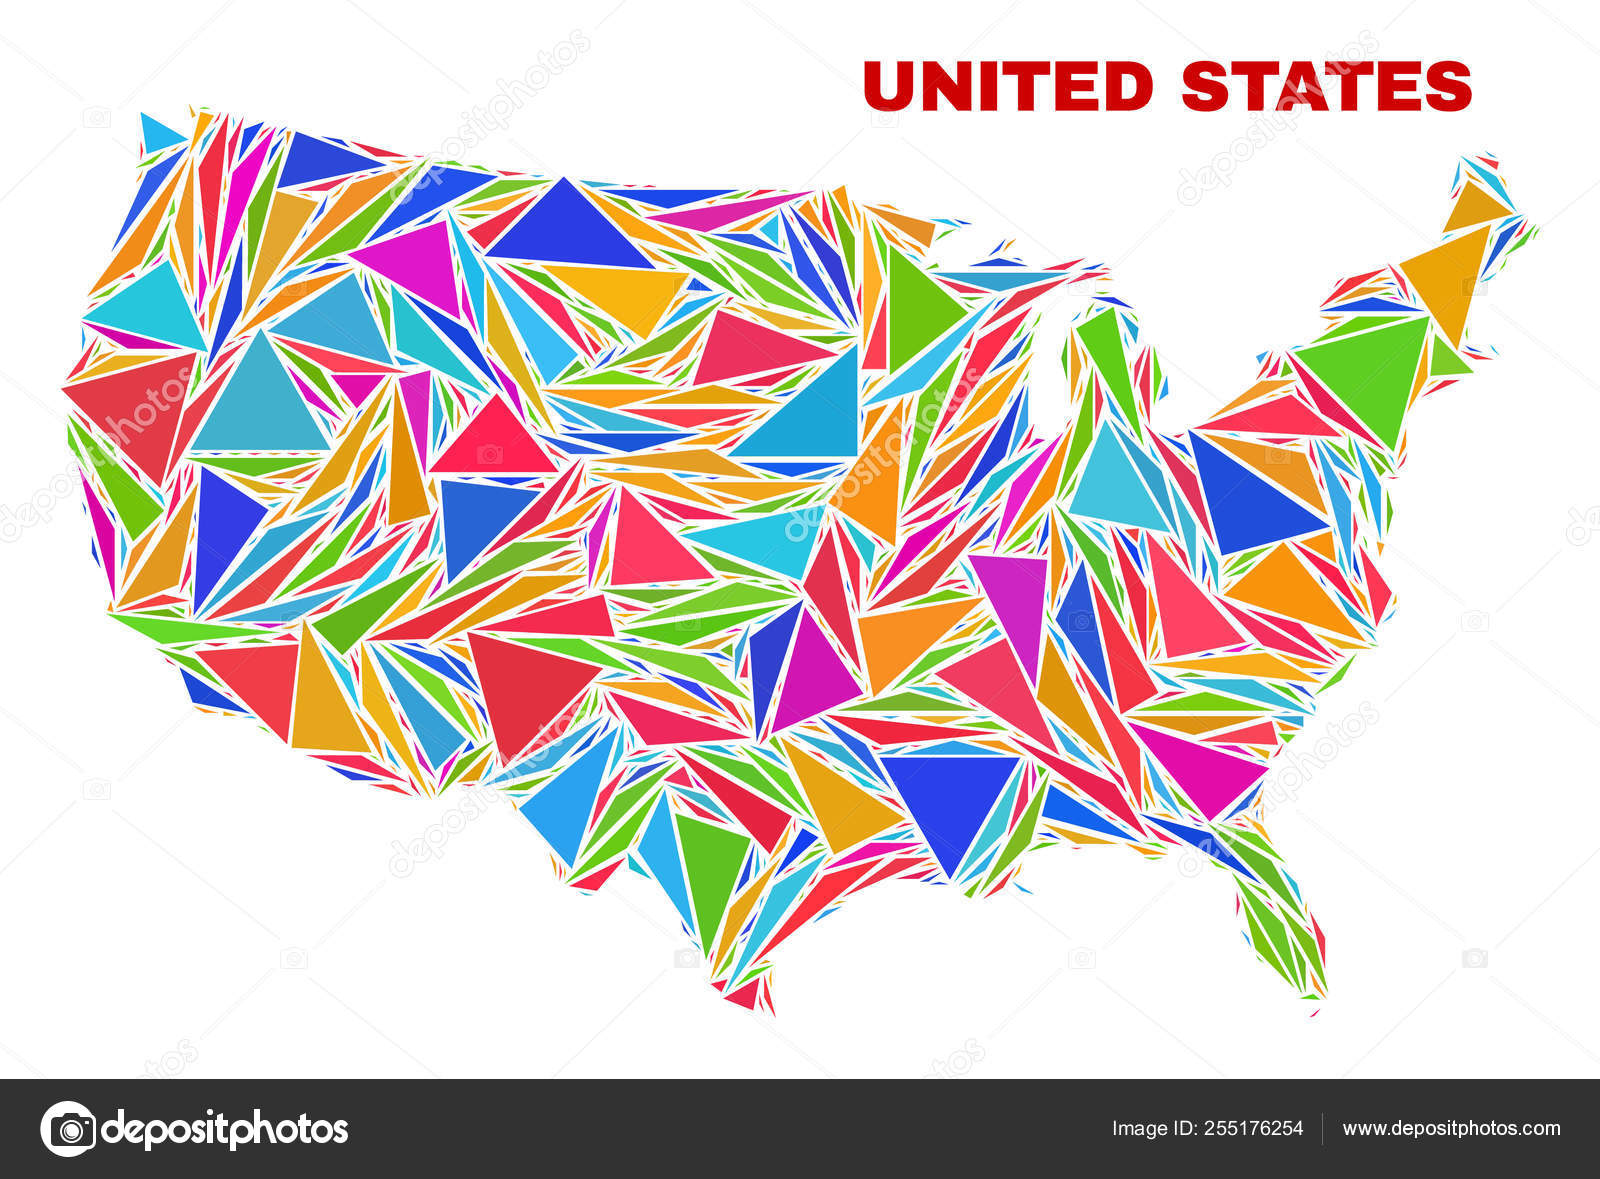 United States Map - Mosaic of Color Triangles — Stock Vector ...